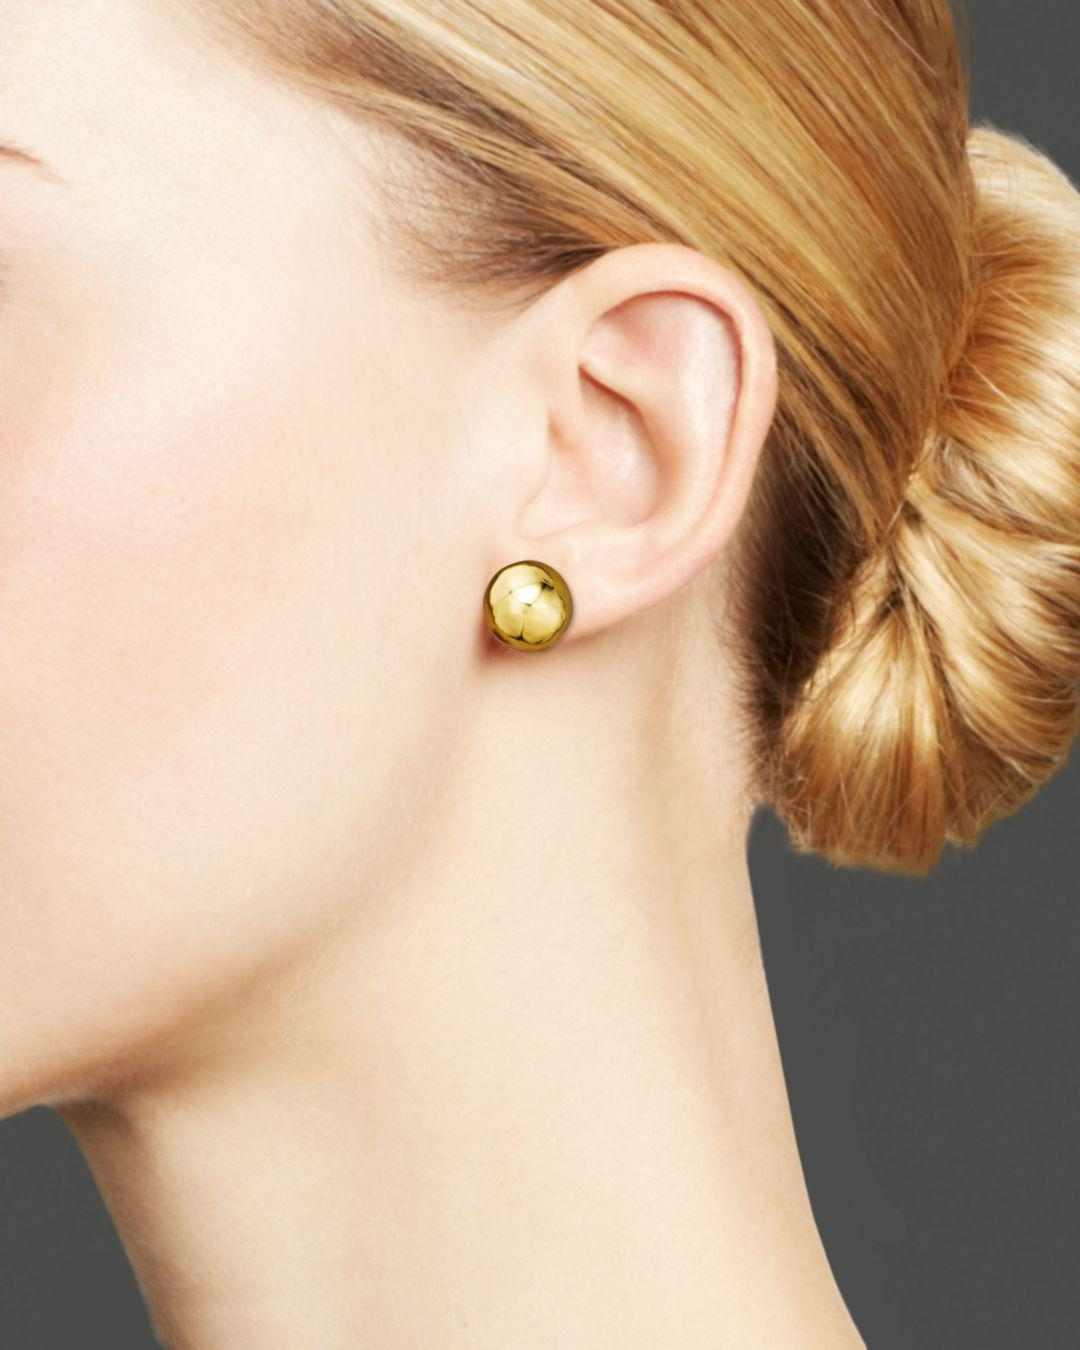 18k Gold Hammered Ball Stud Earrings In